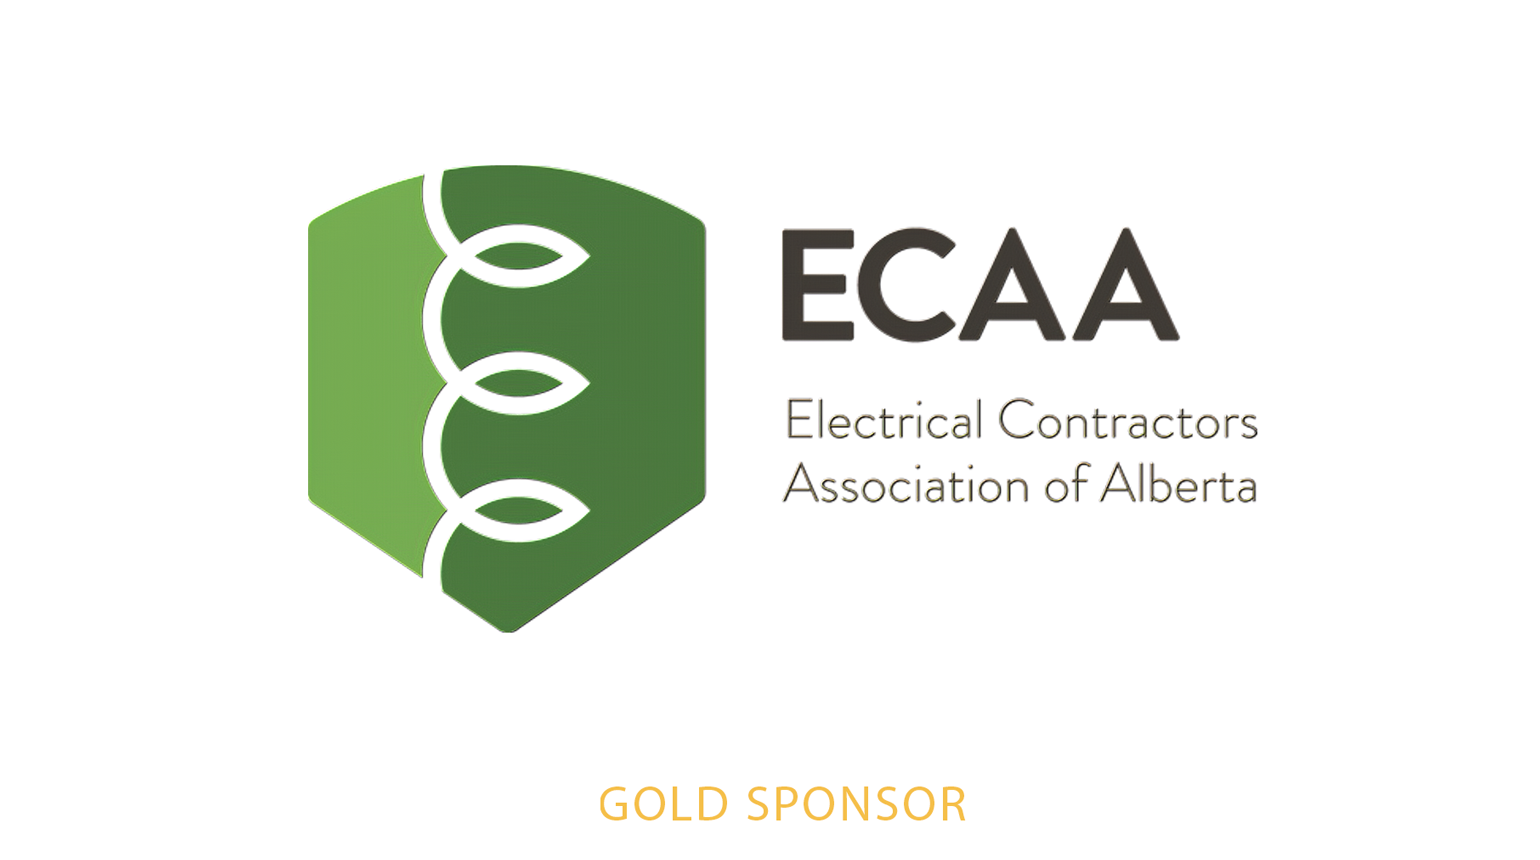 ECAA | Electrical Contractors Association of Alberta